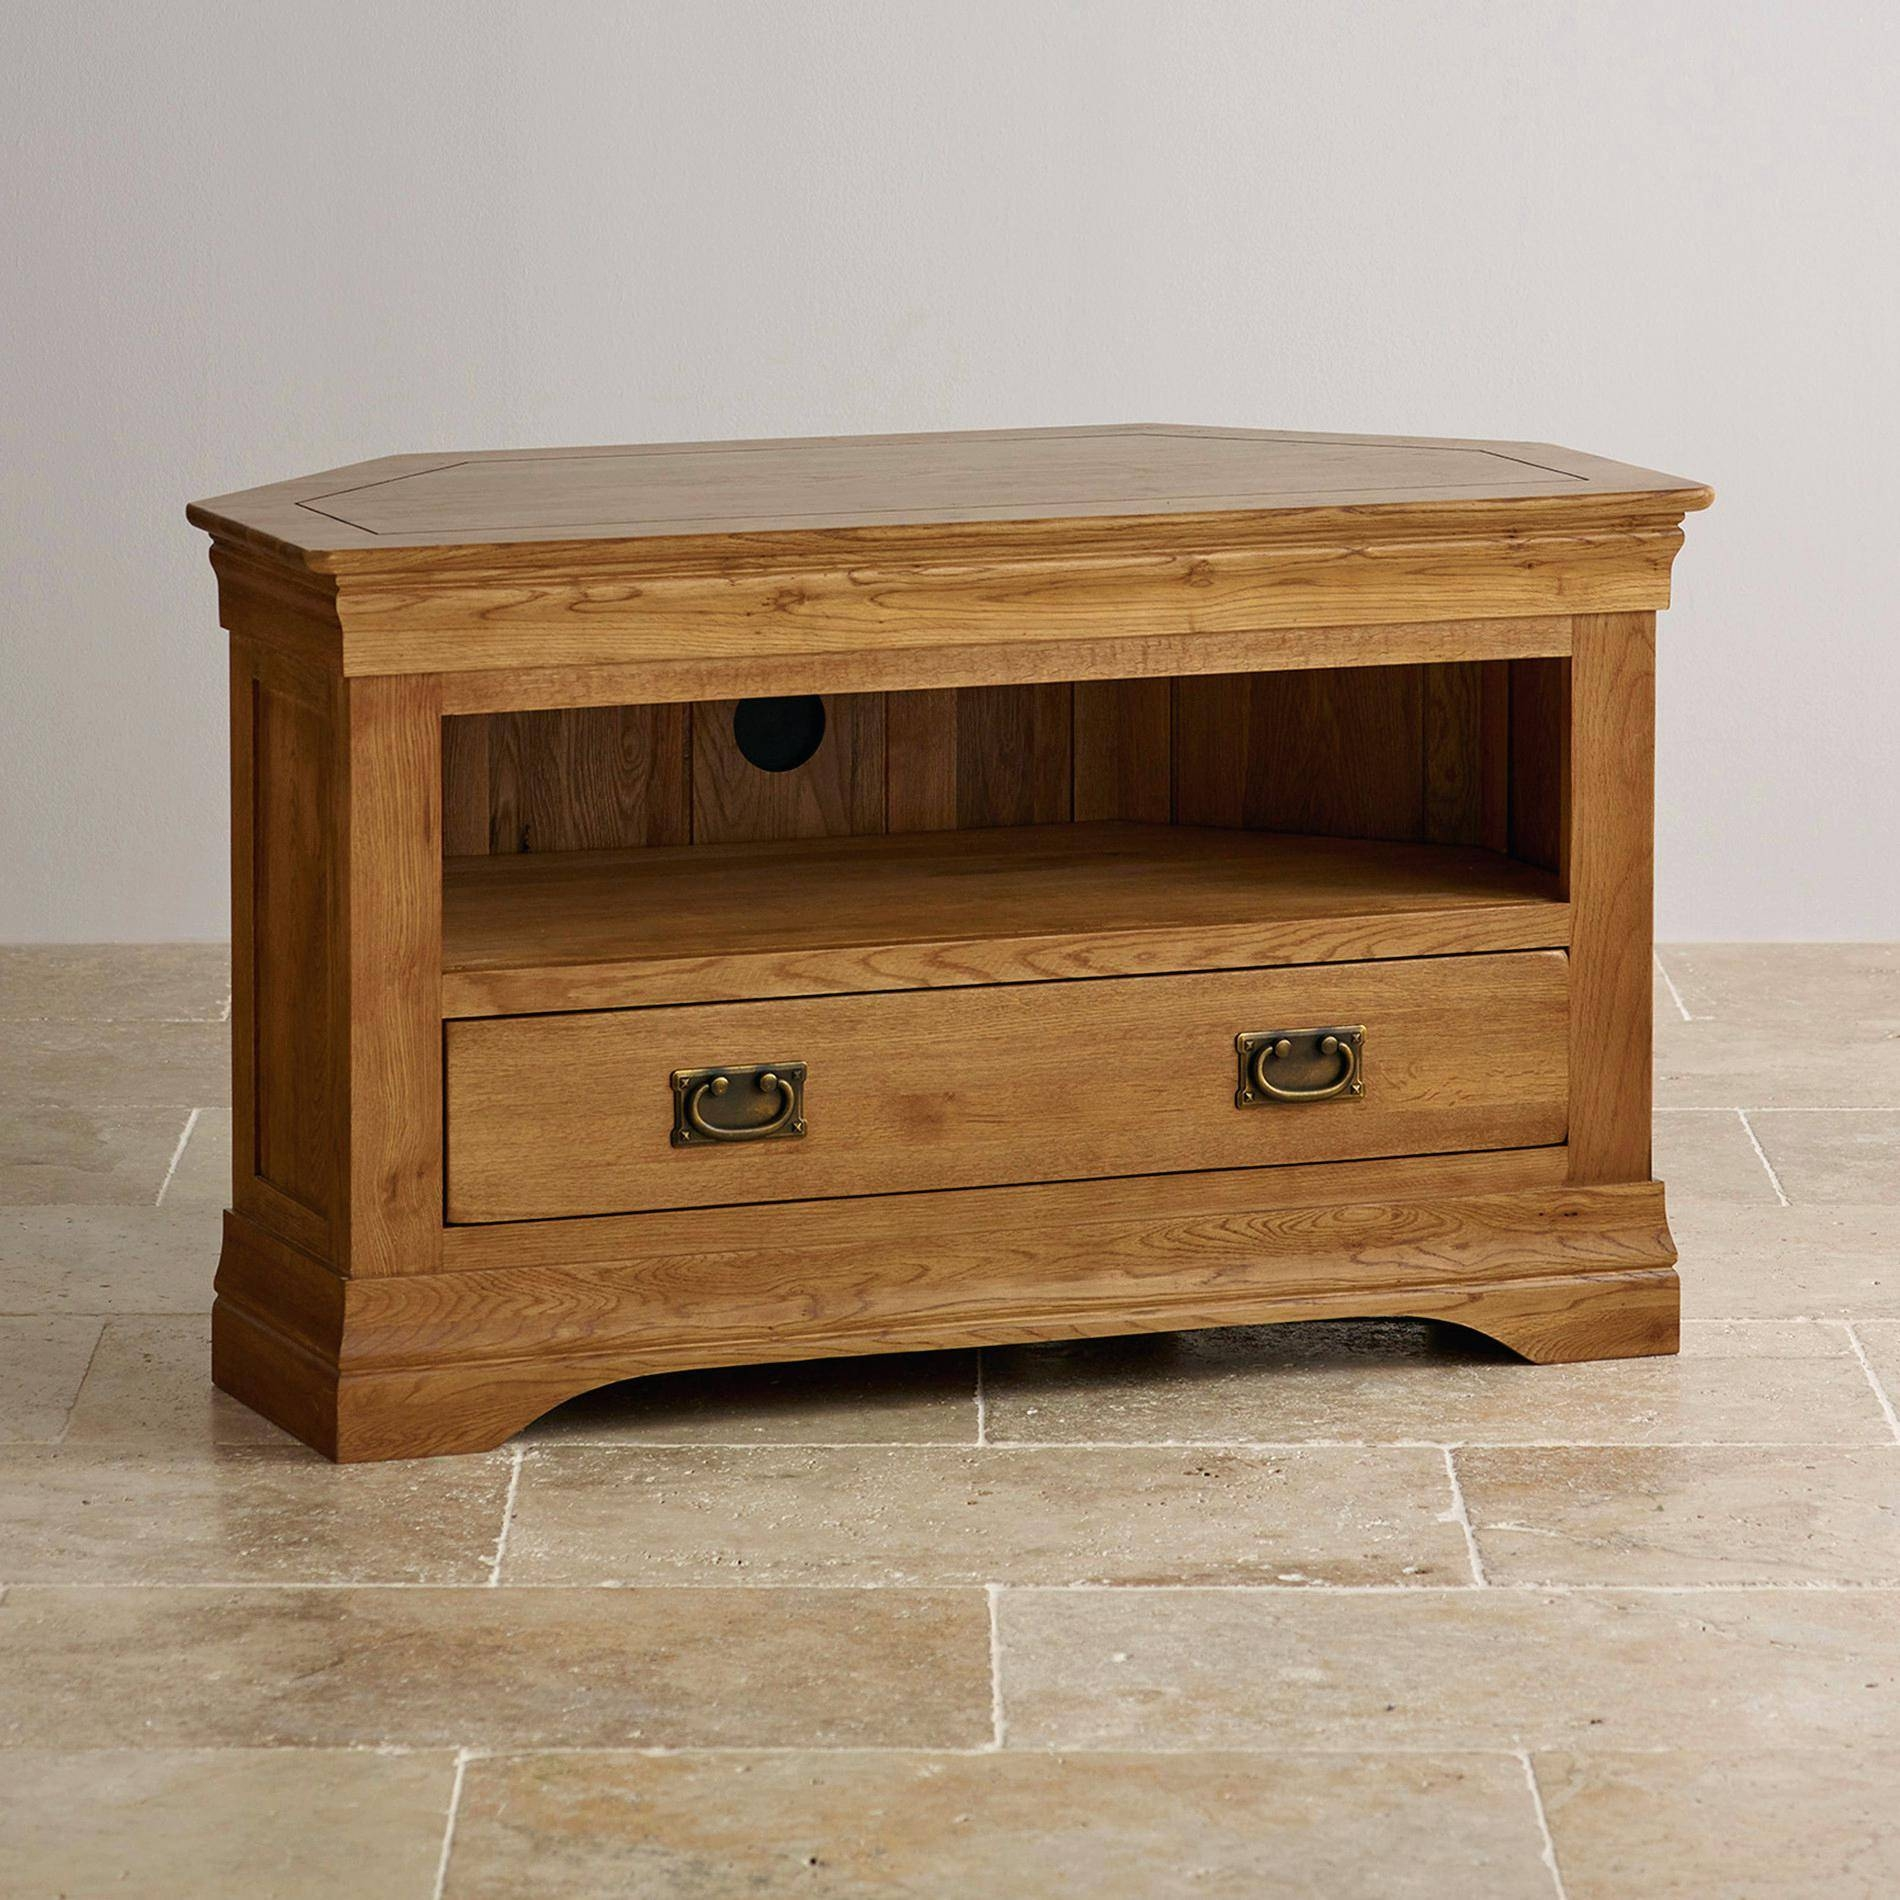 Tv Stand : Cool Rustic Oak Corner Tv Stand With Drawer Corner Oak with regard to Corner Oak Tv Stands for Flat Screen (Image 9 of 15)